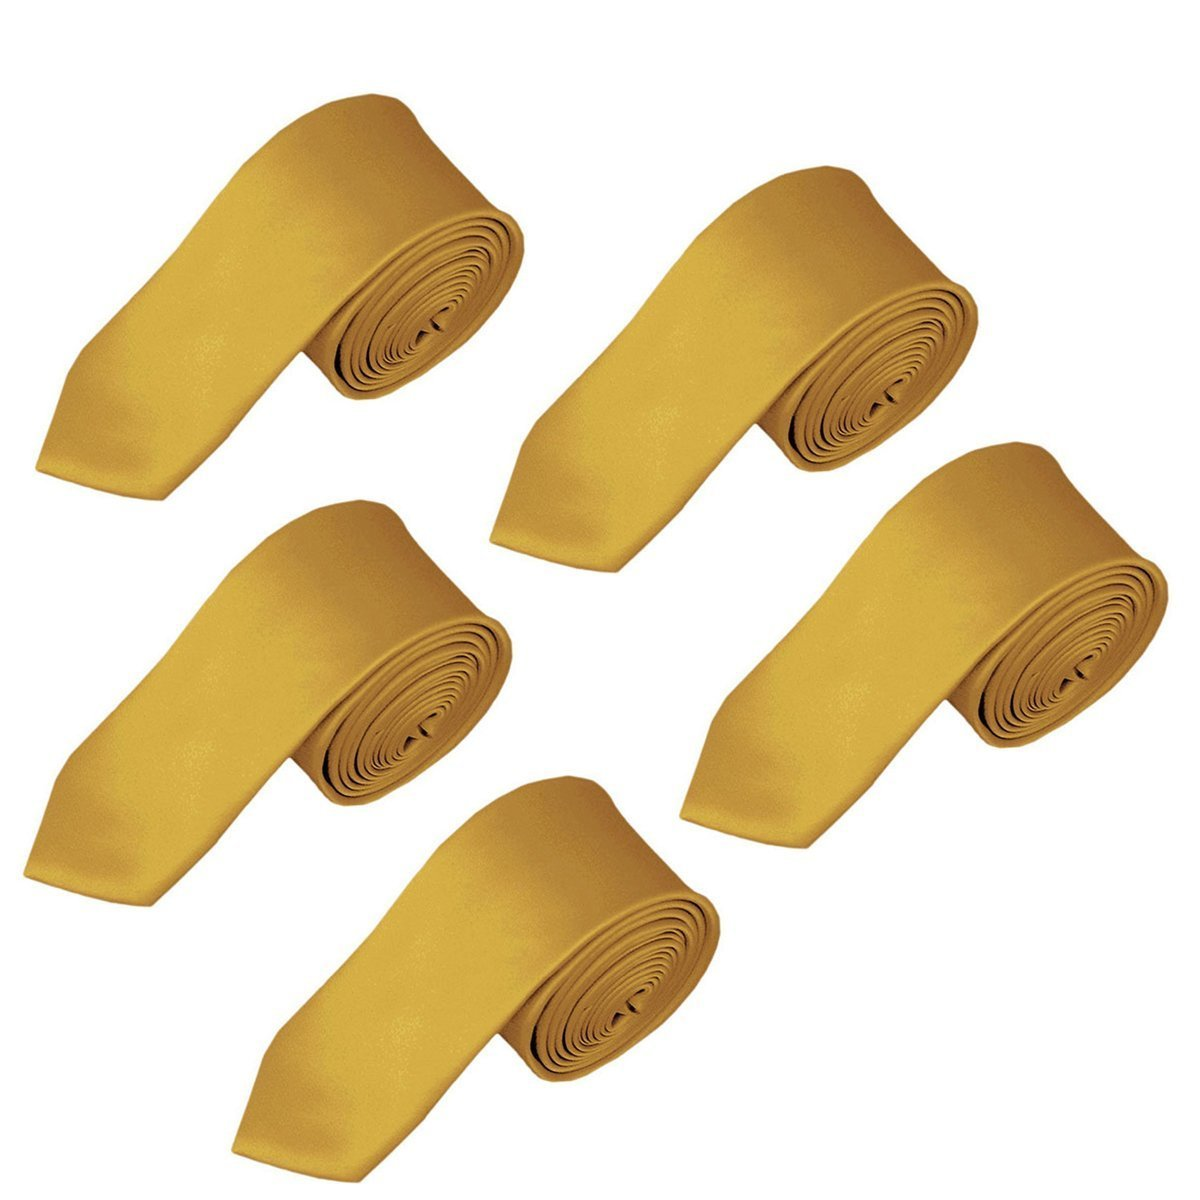 Solid Color Boys Tie Wholesale 5PCs Children and Teen's Necktie Wholesale 2.5 inches (Gold)